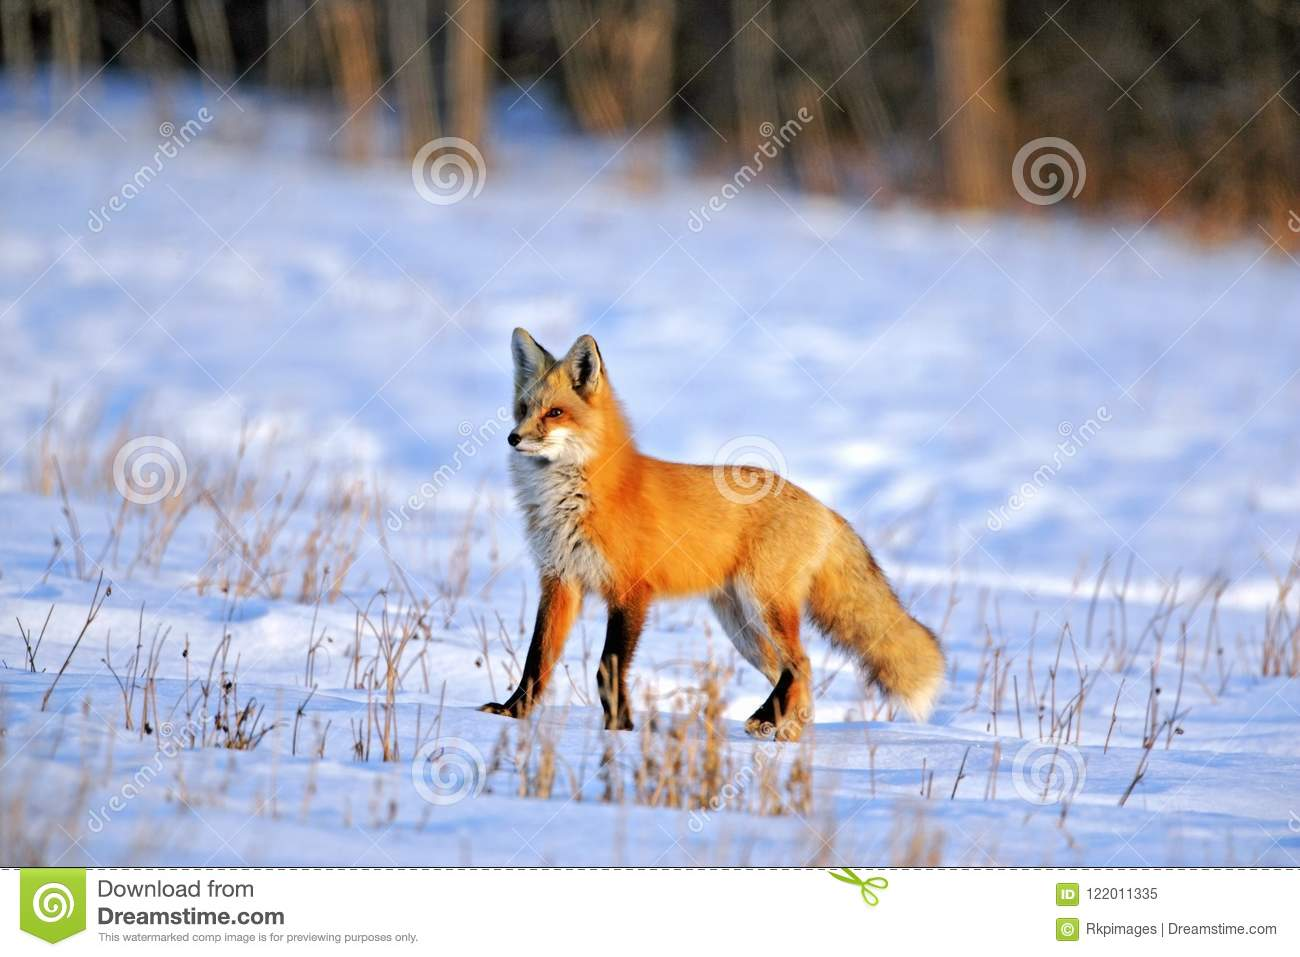 Red Fox in prime winter coat hunting in snowy field on late winter day.